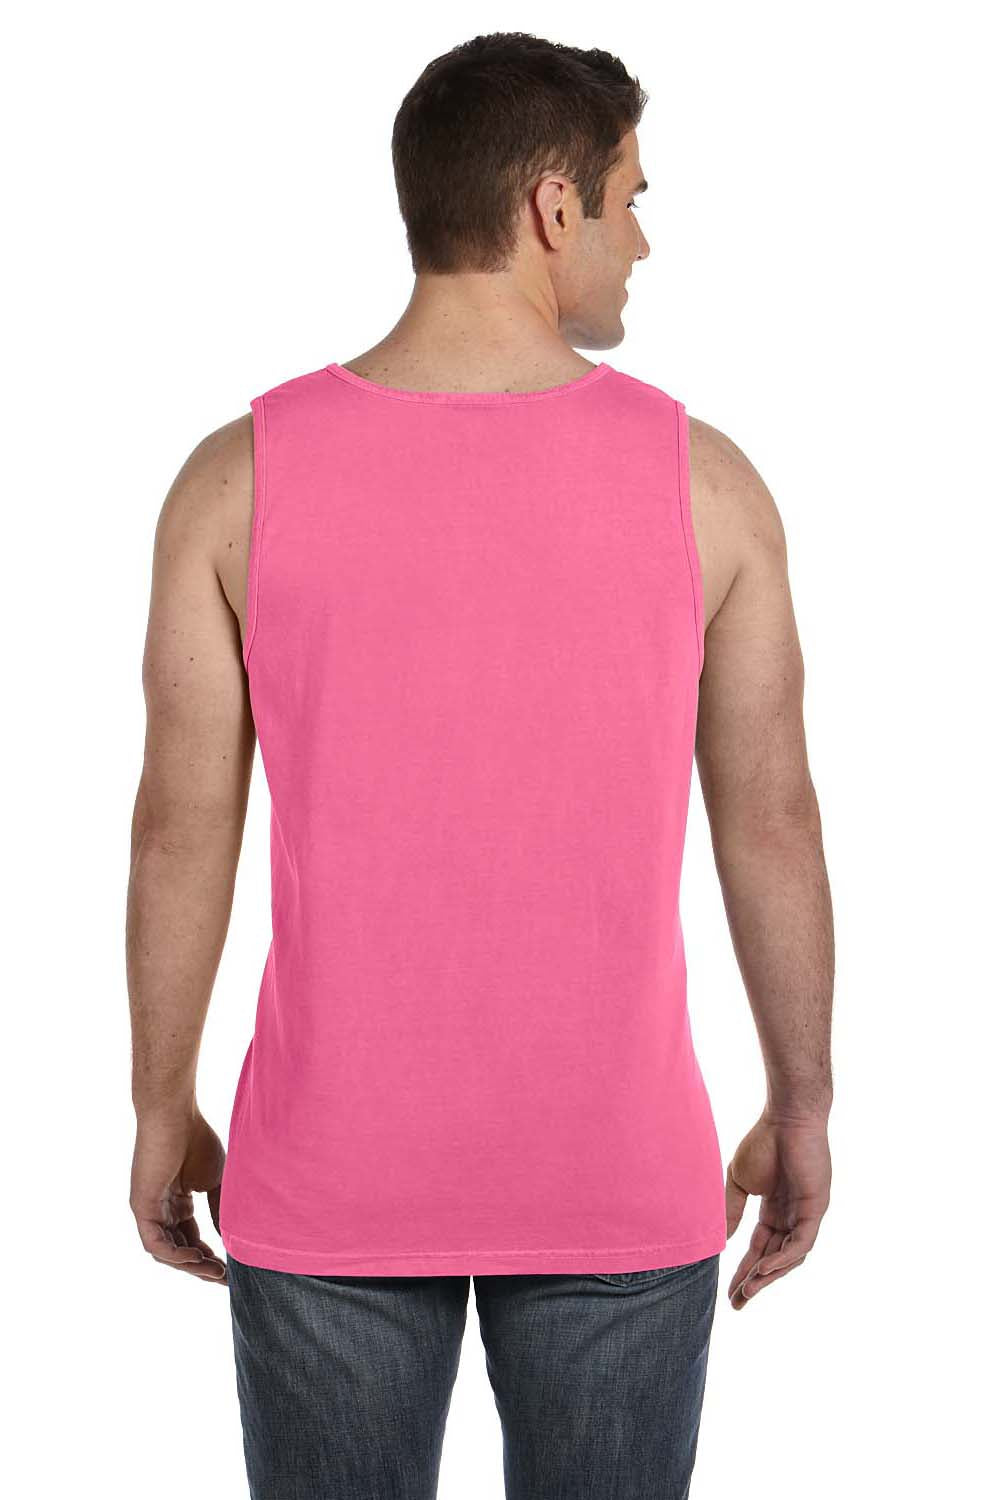 Comfort Colors C9360 Mens Tank Top Crunchberry Pink Back